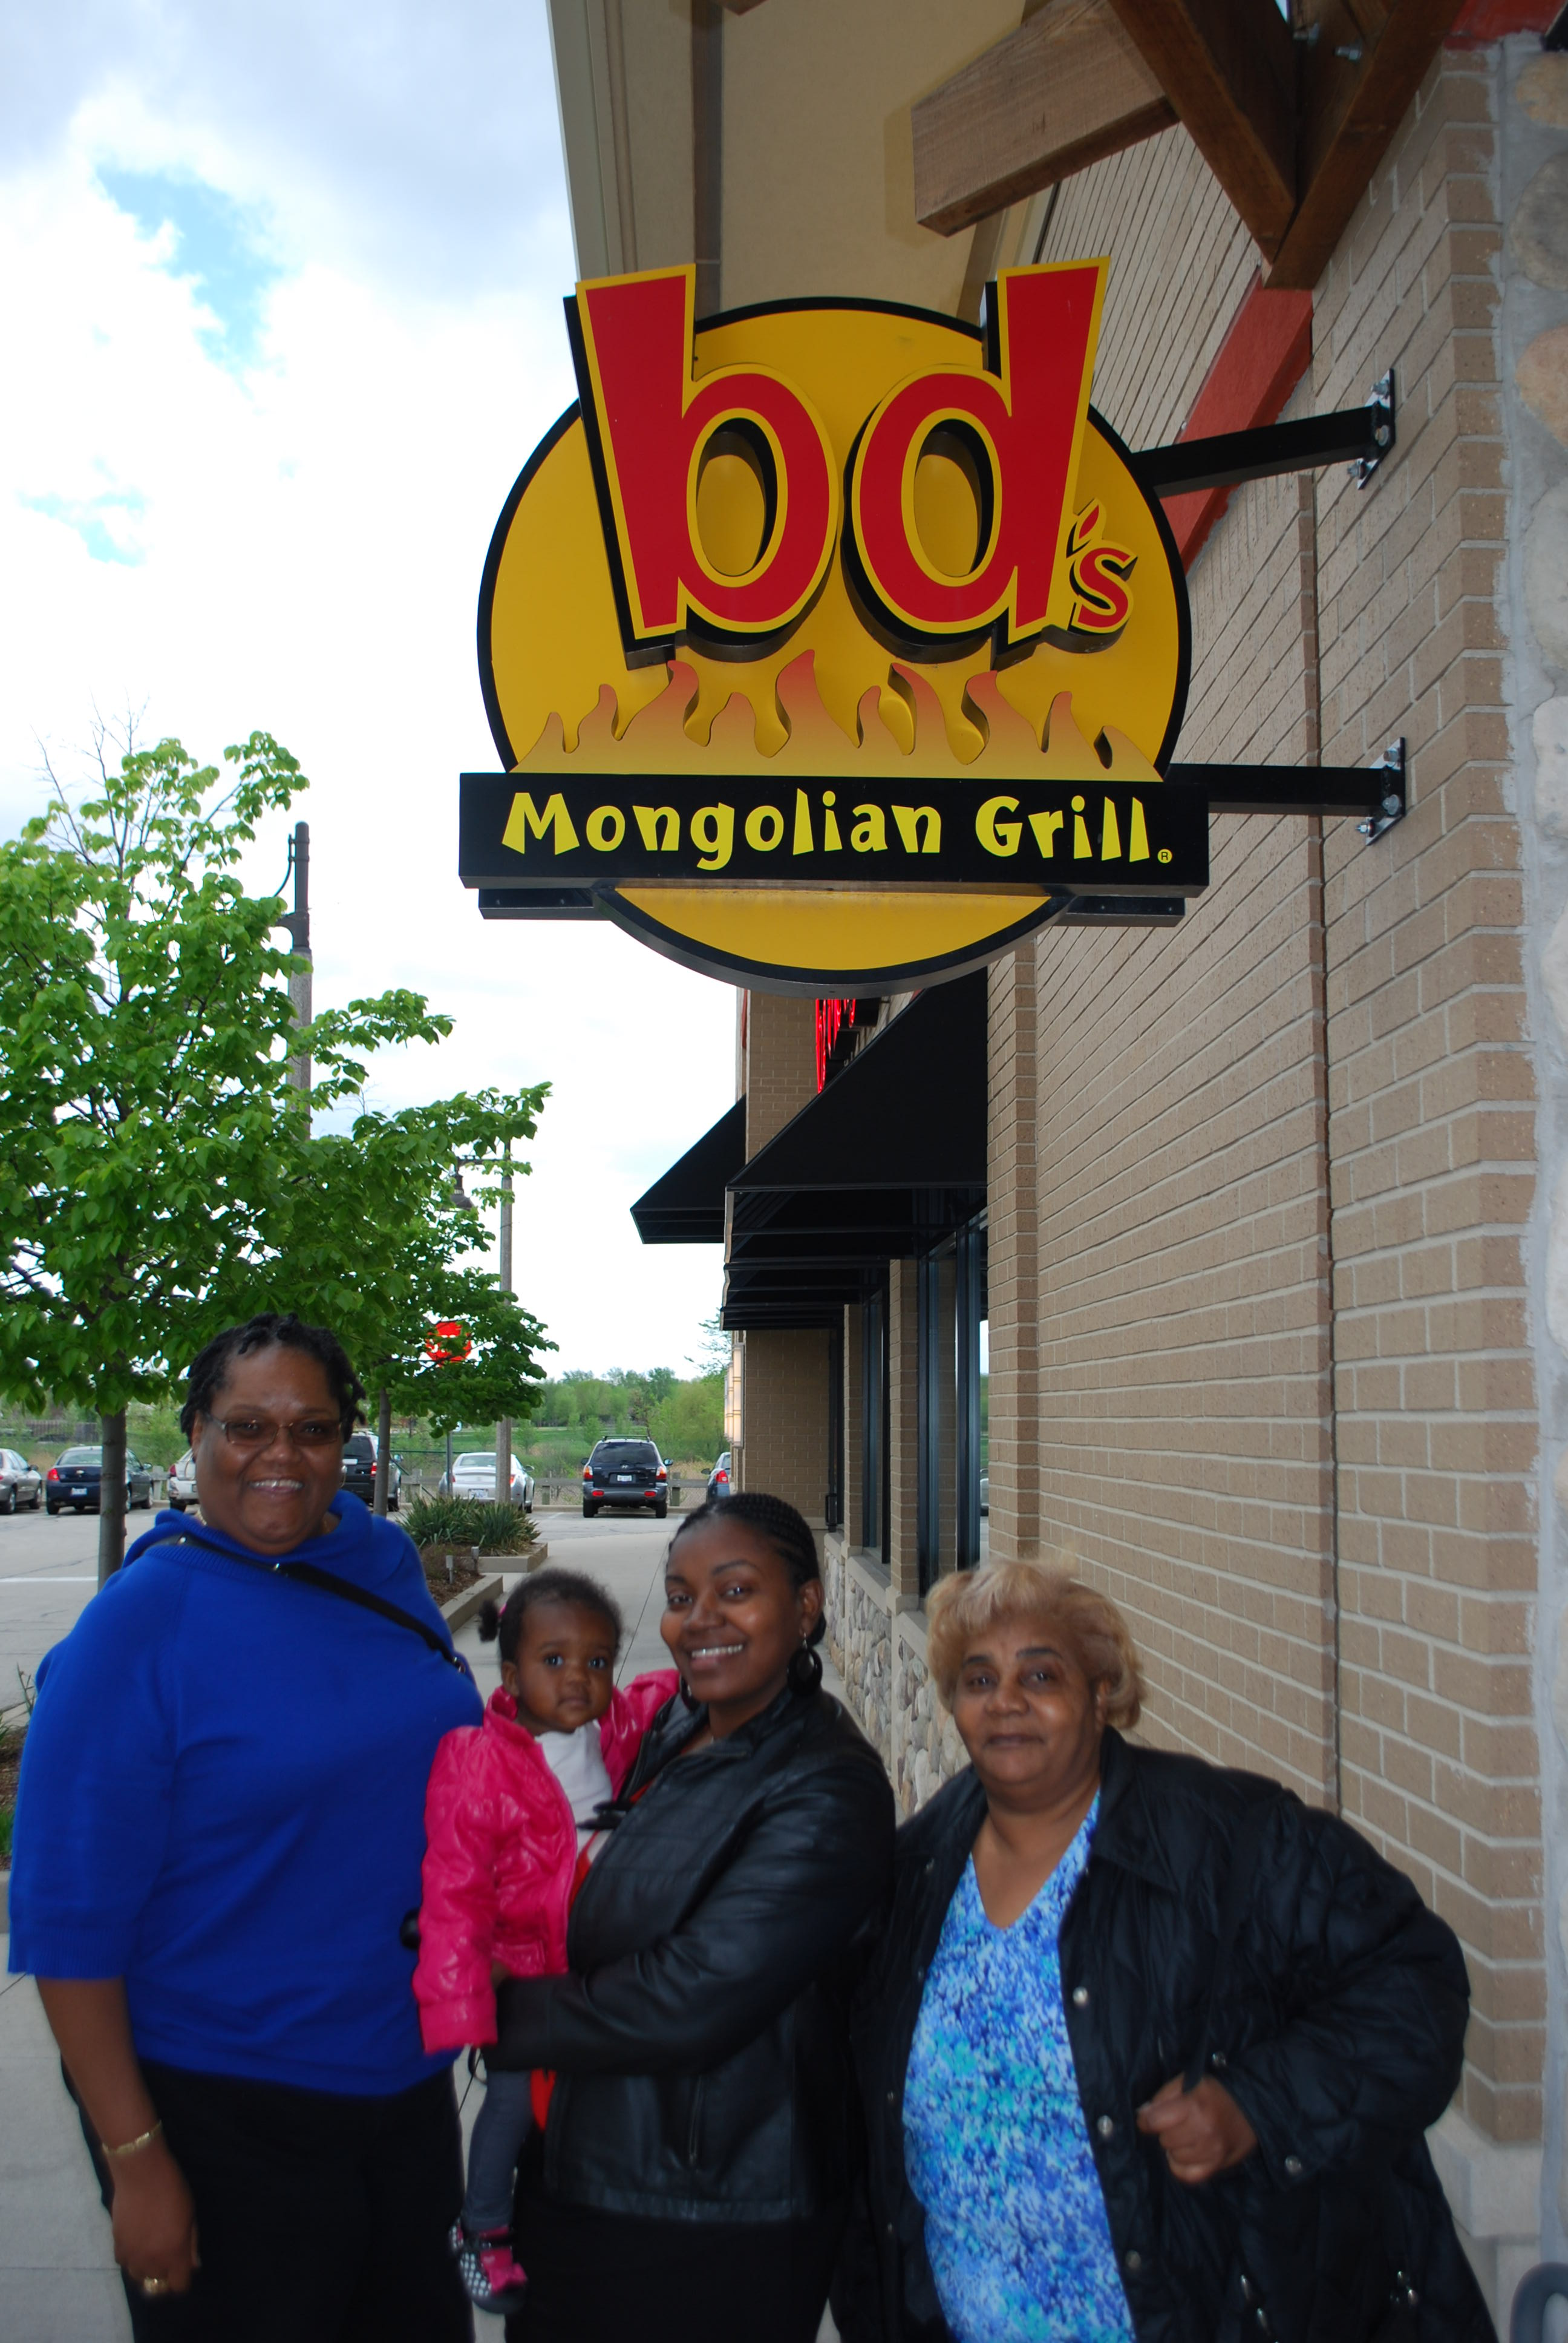 Me with My Grandbaby Mink, My Future Daughter-In-Law LaToya and My Son's Future Mother-In-Law Louise